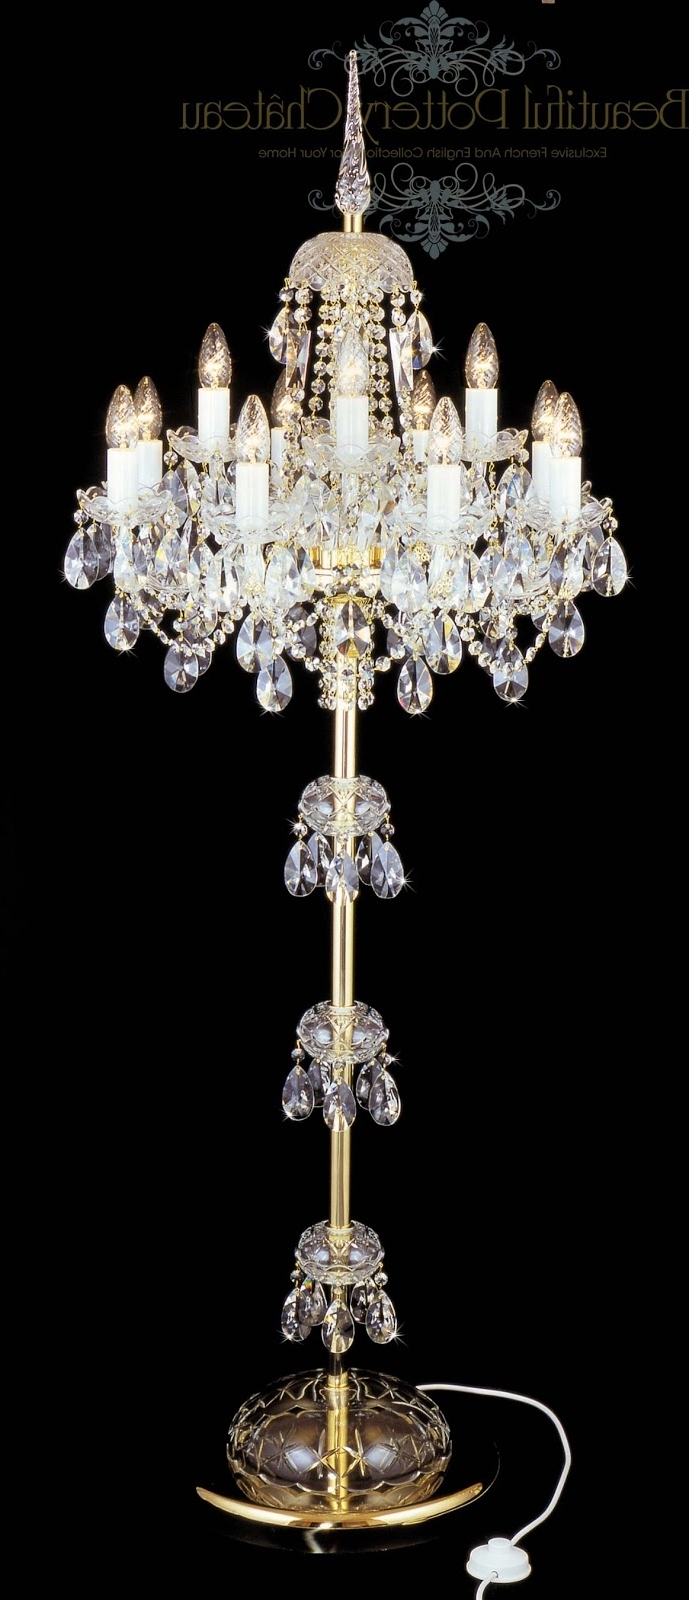 Standing Chandeliers With Regard To Popular Beautiful Pottery: Bohemian Crystals Standing Chandelier (View 12 of 15)